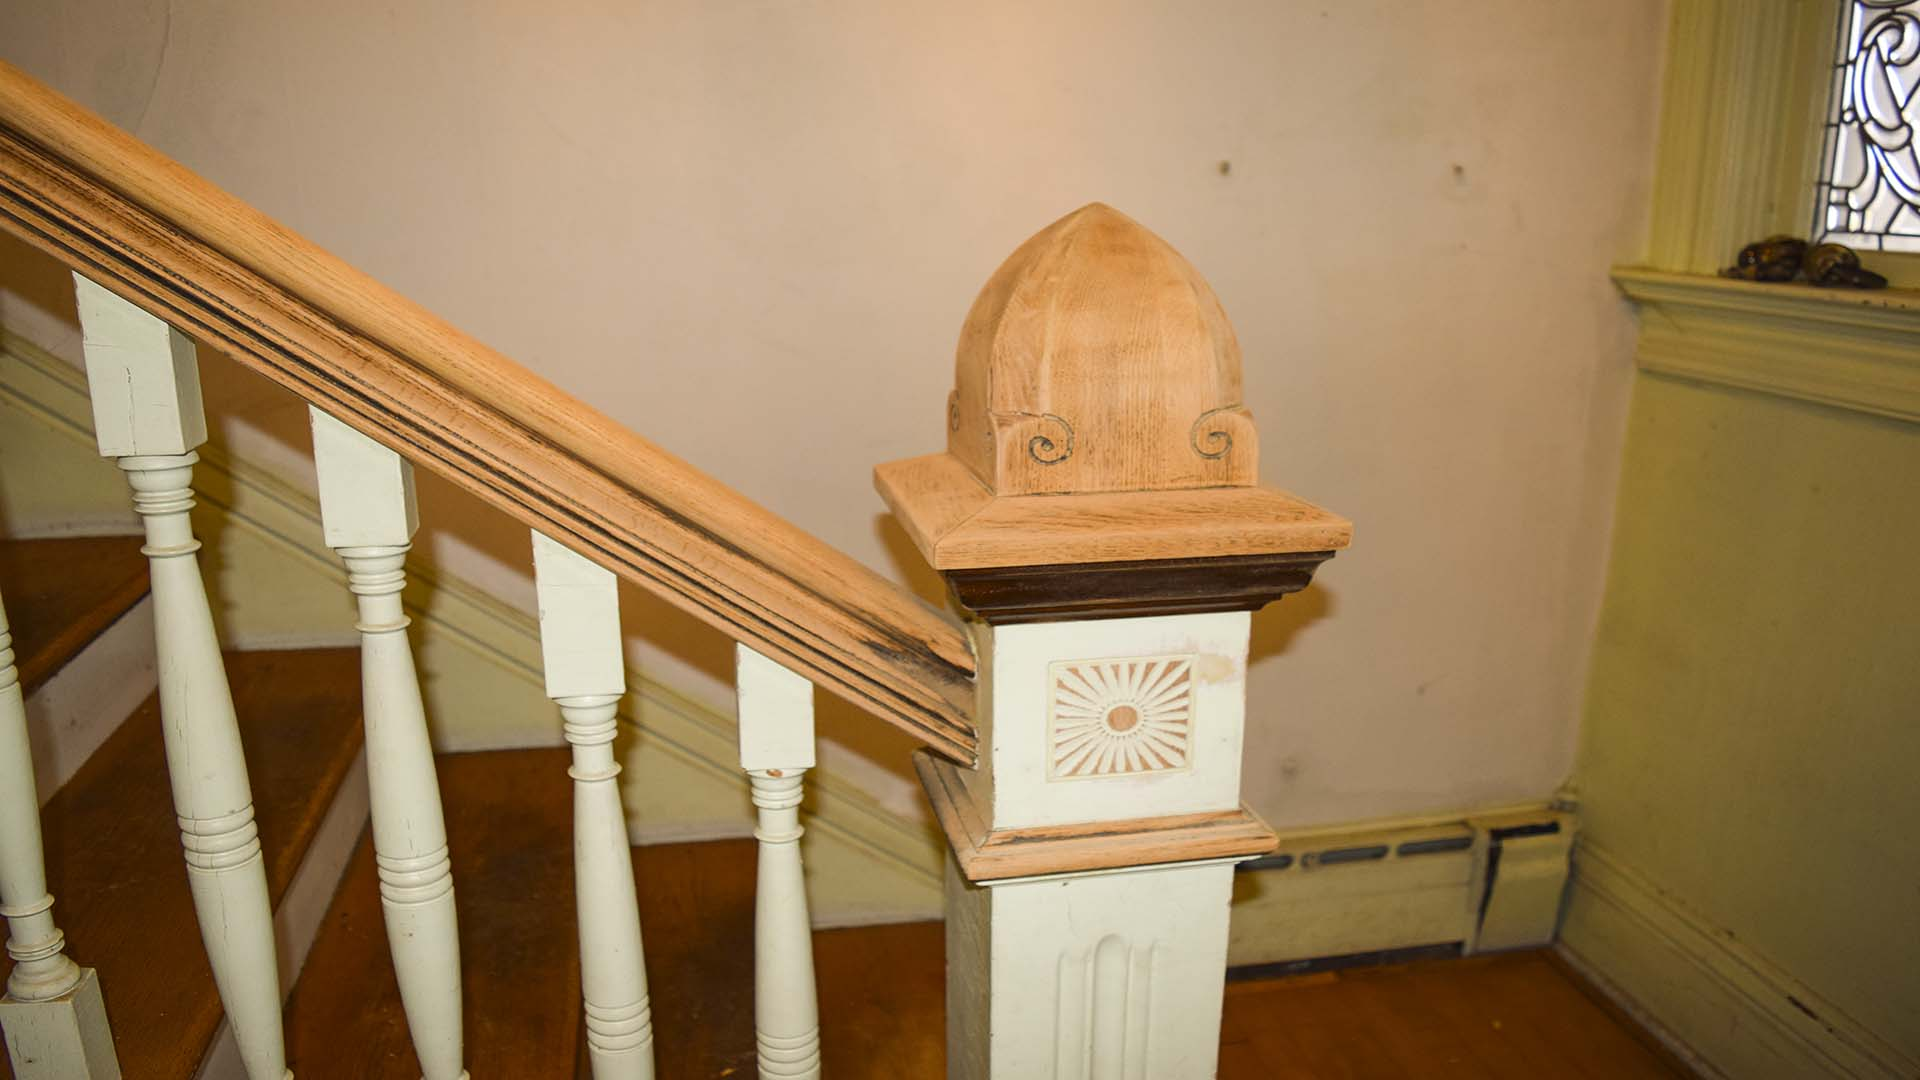 Now we are getting all the old finish off the banister.